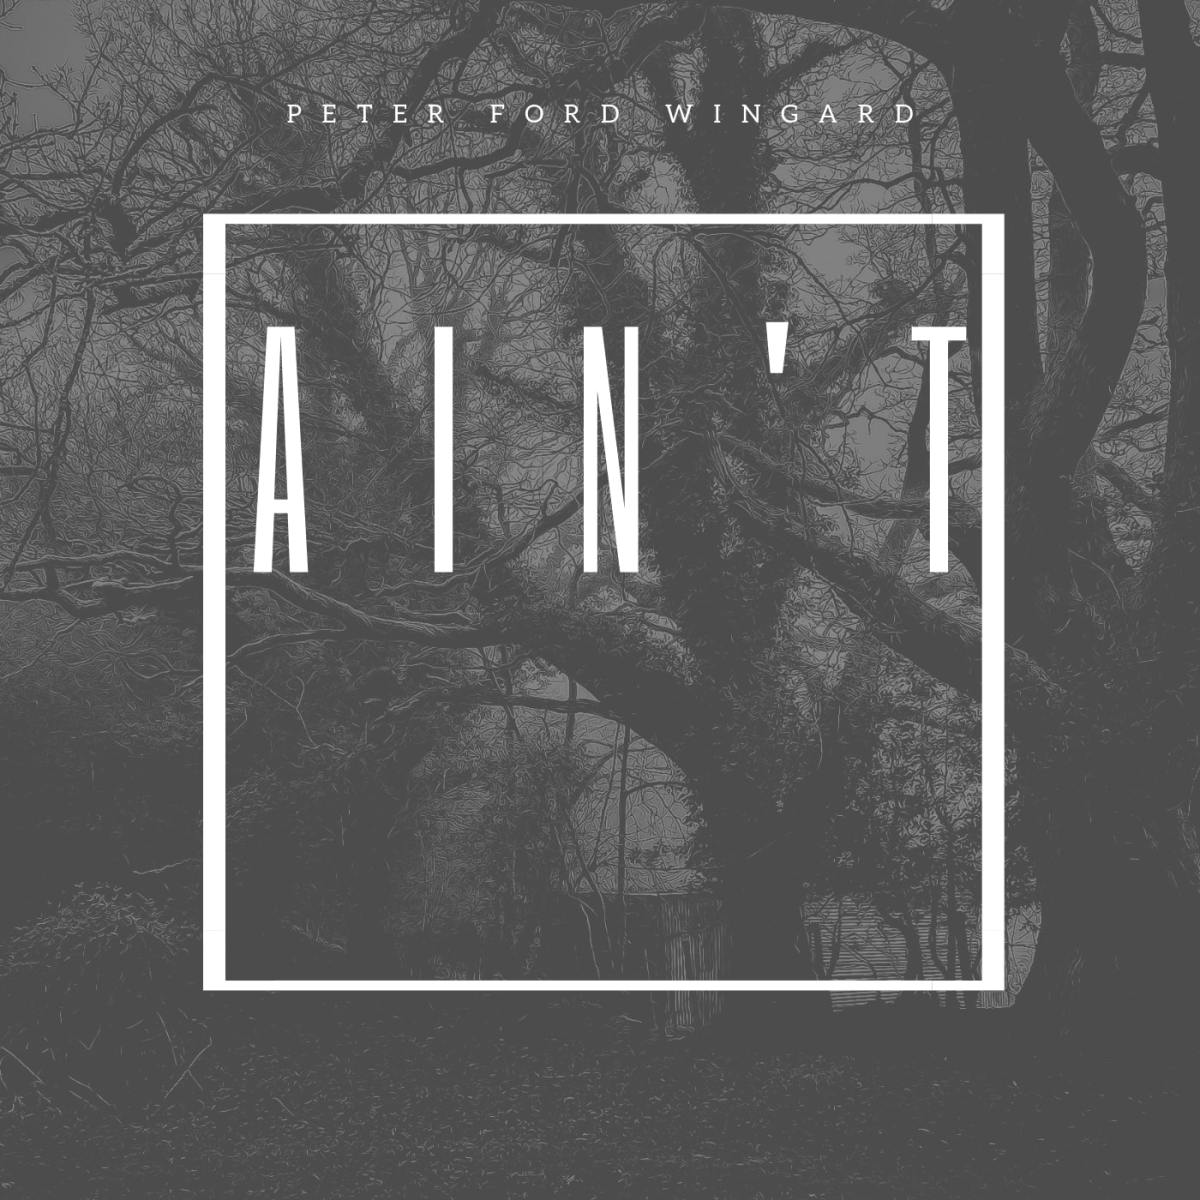 Ain't EP Peter Ford Wingard